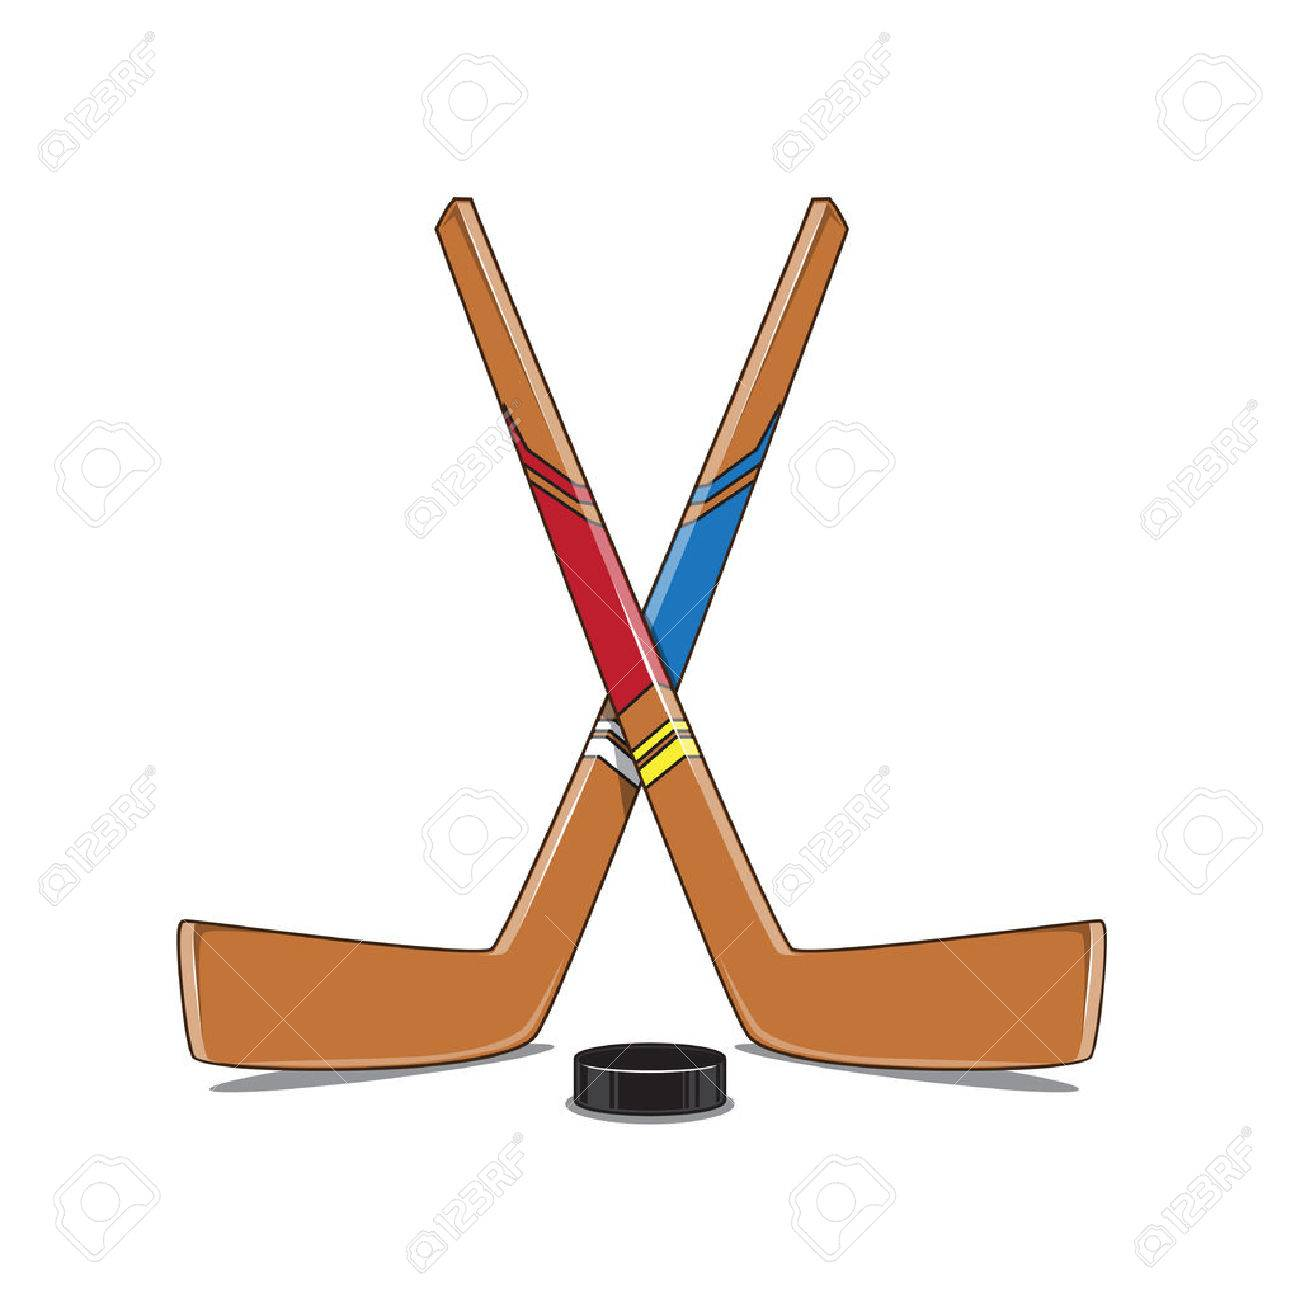 crossed hockey sticks and puck royalty free cliparts vectors and rh 123rf com hockey sticks clipart hockey stick clipart